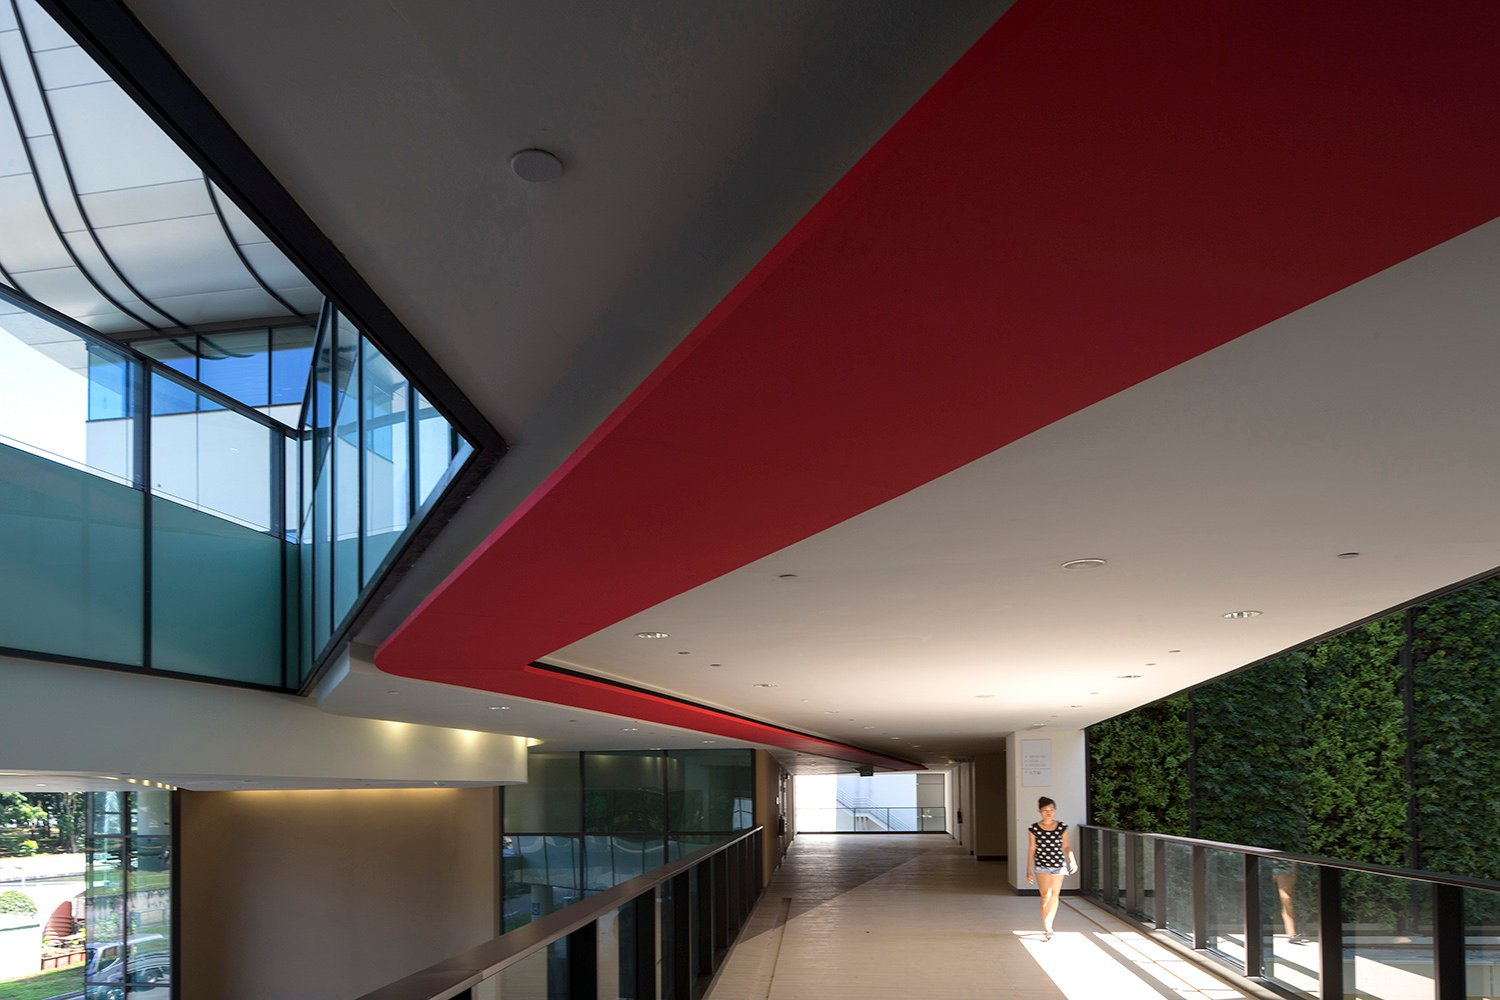 The language of the ribbon on the external is brought into the internal,  in SIT's corporate colour red